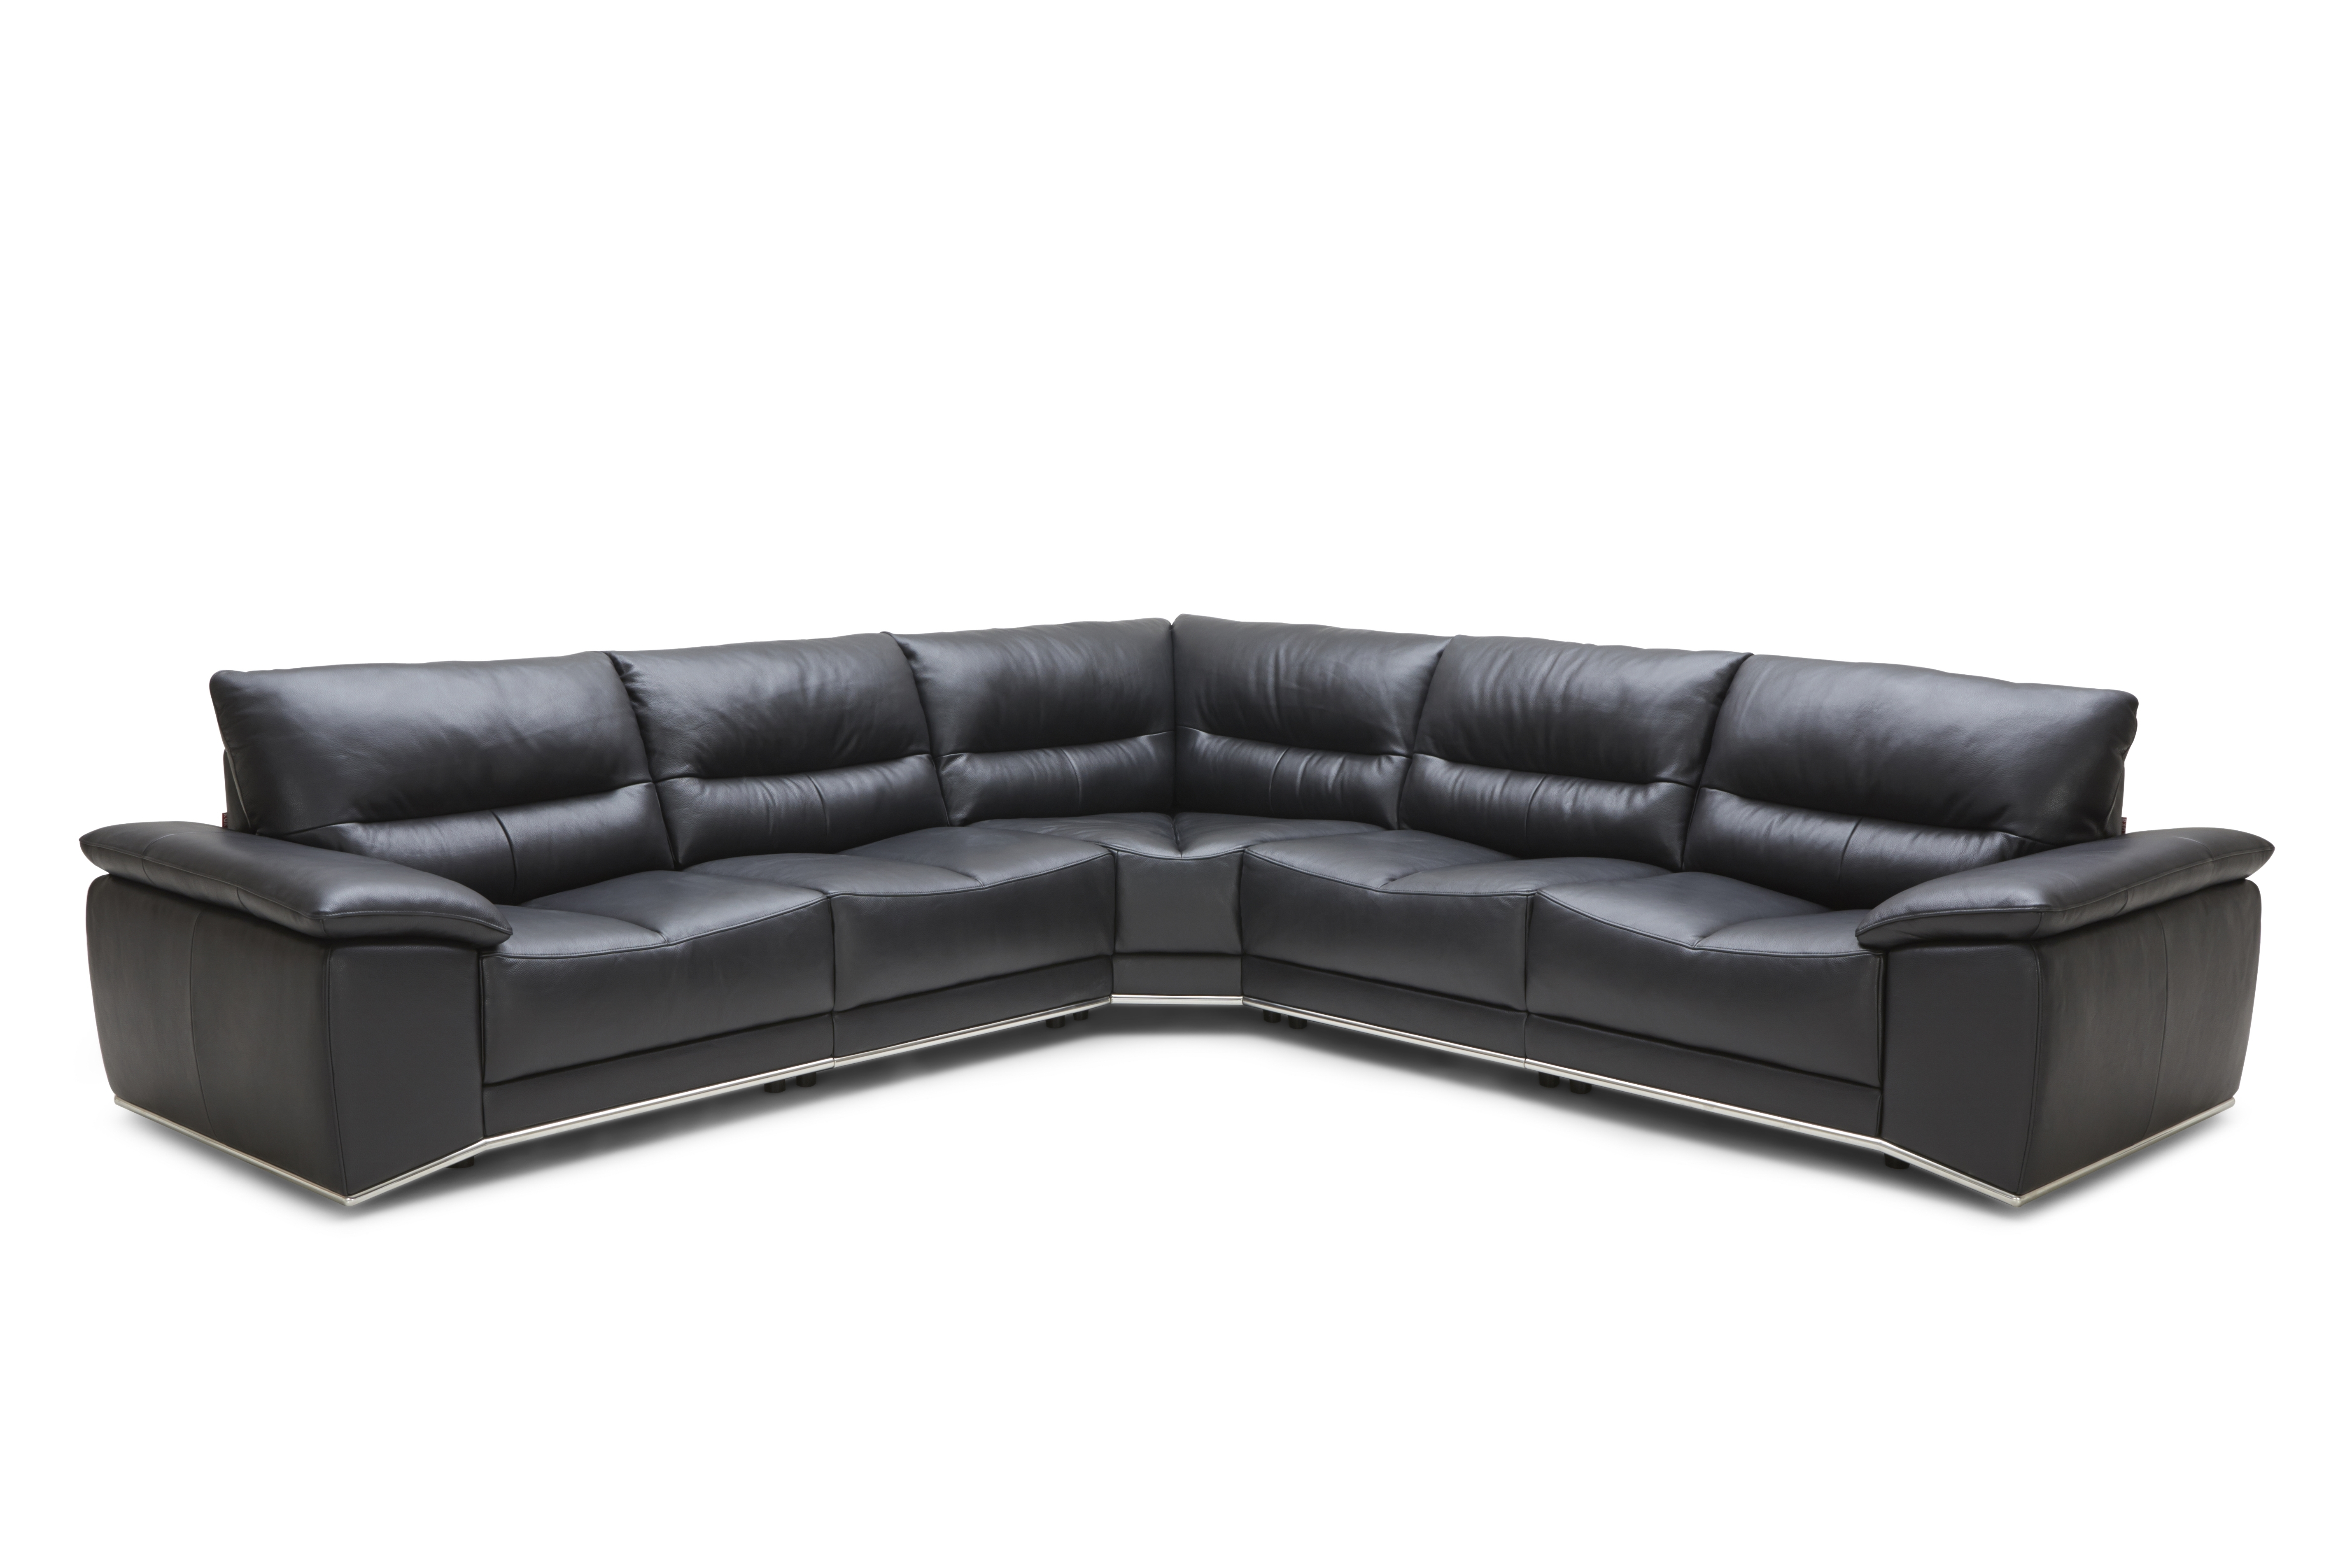 Sectional Furniture Toronto | Cheap Sectional Sofas Toronto For Sectional Sofas In Toronto (Image 8 of 10)